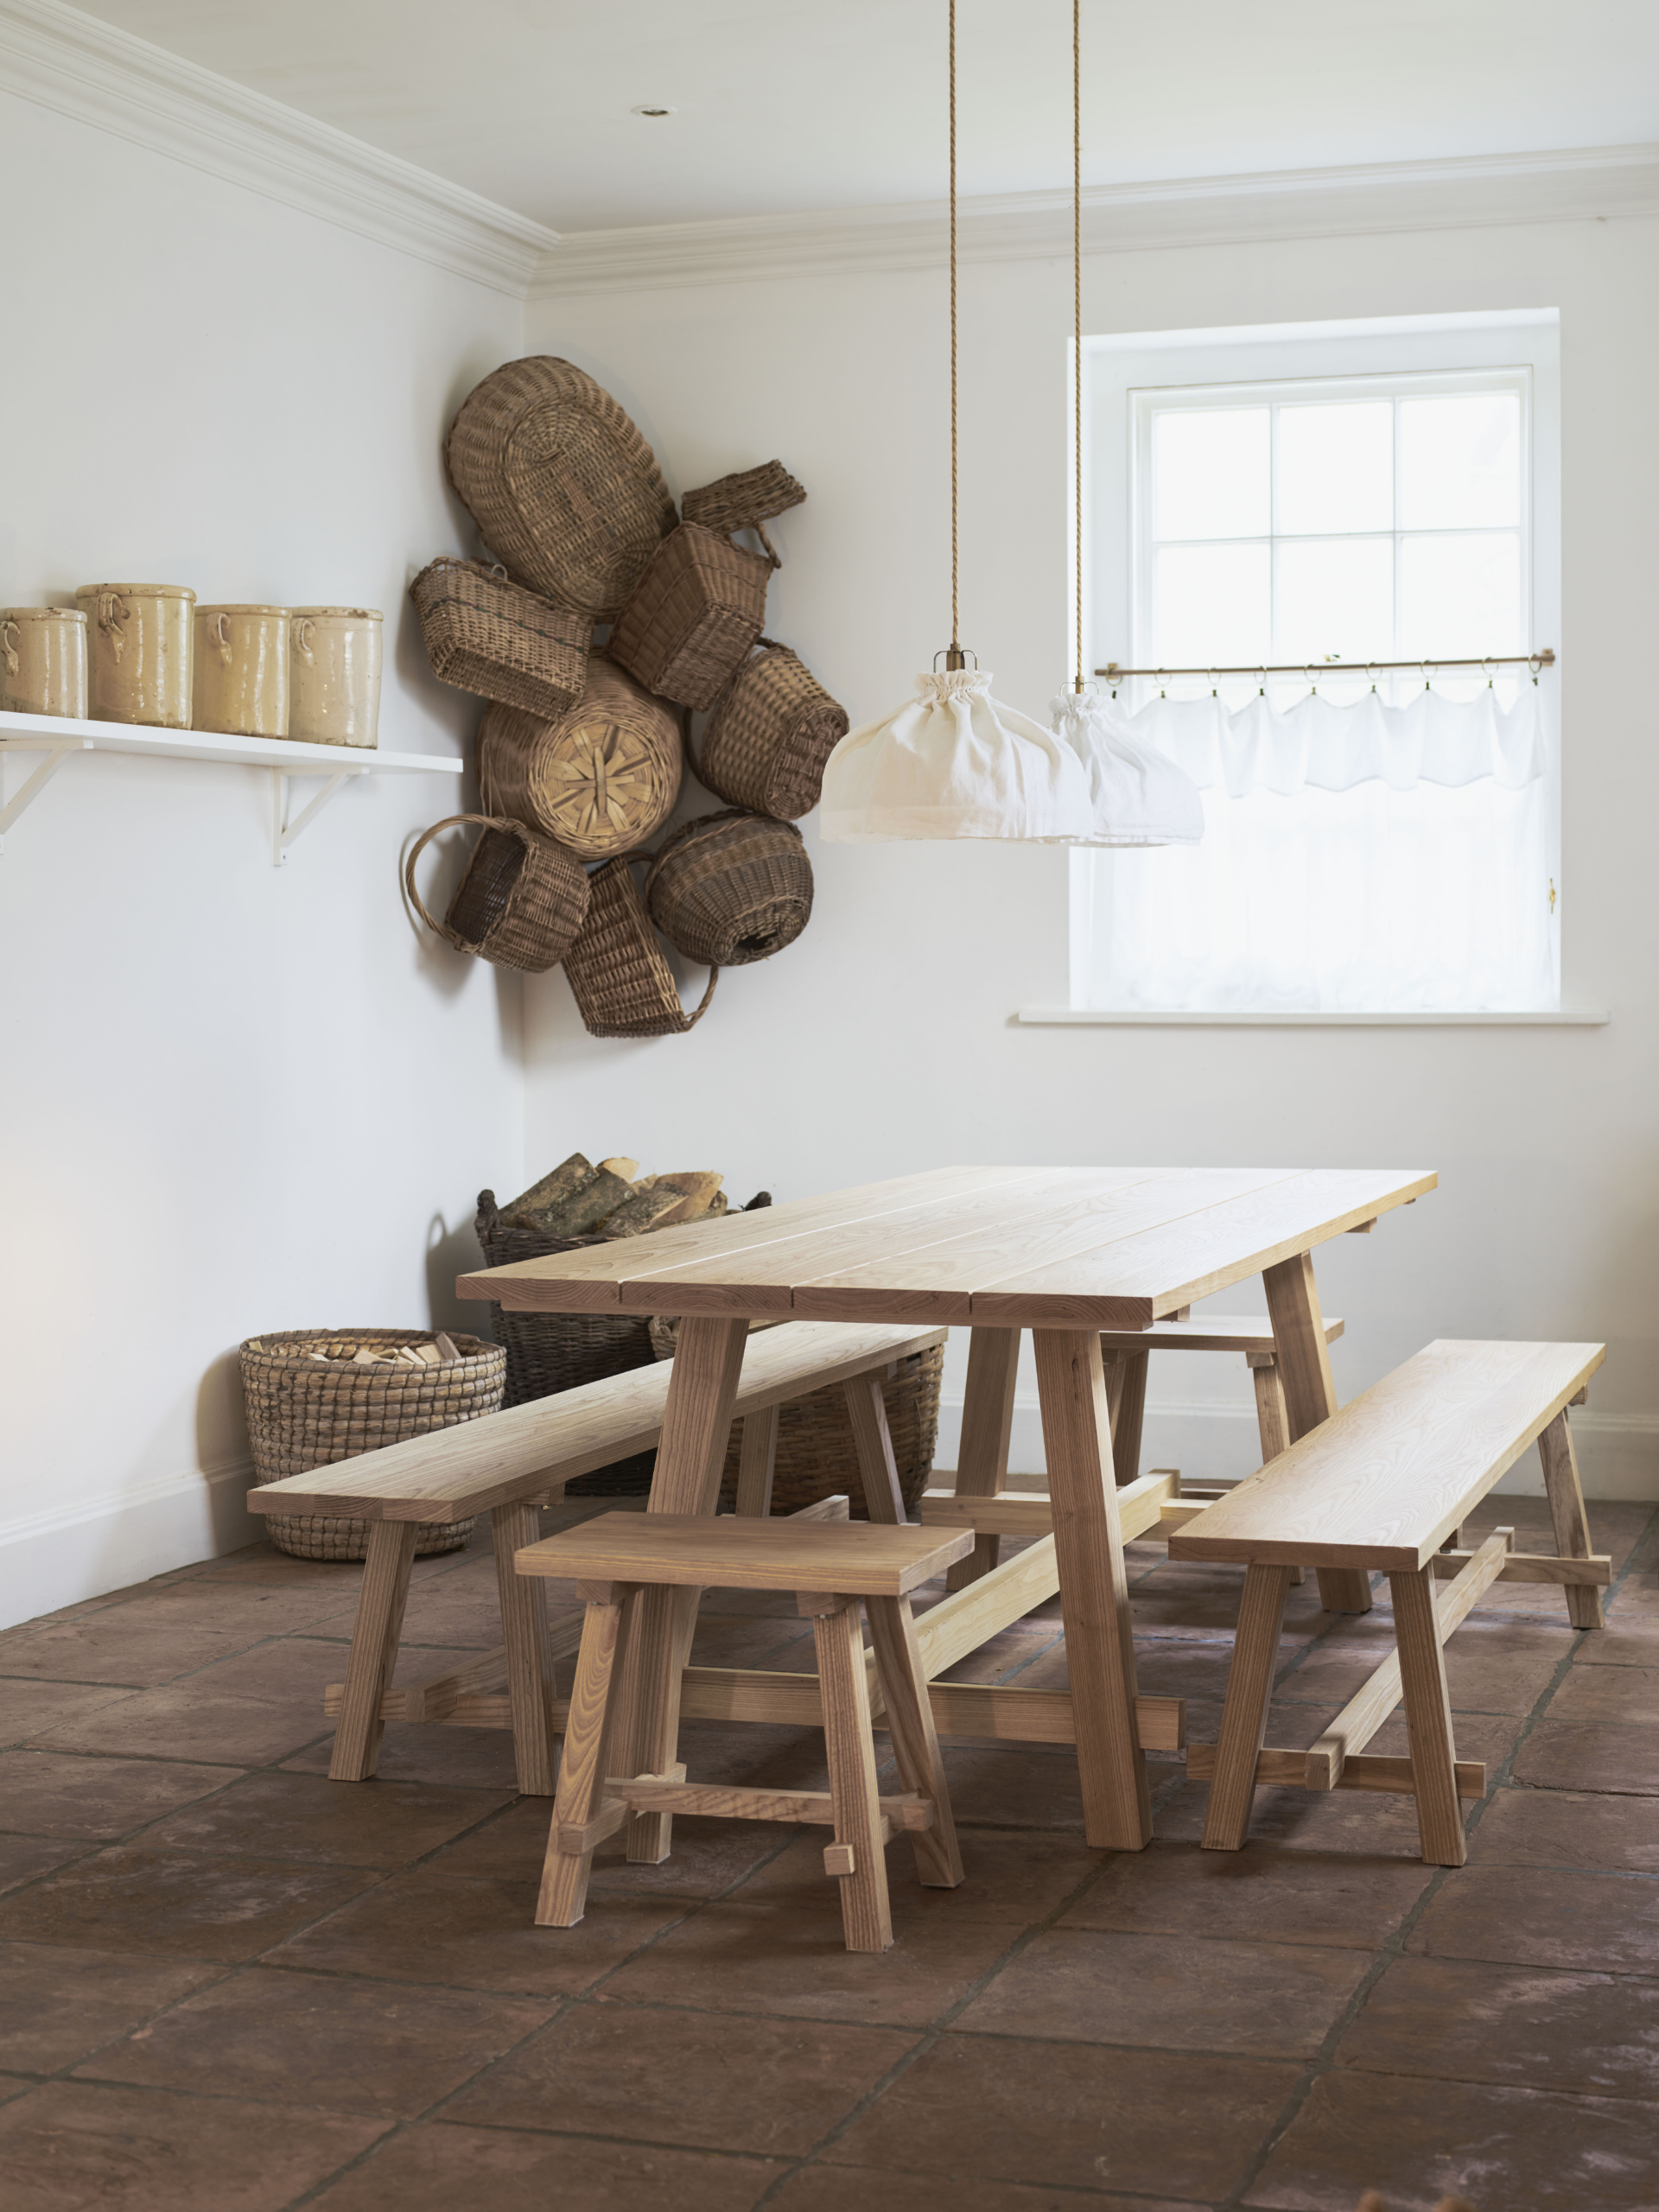 WoodEdit Kitchen Table in Ash, as seen in the home of the designers, Paul and Maria Le Mesurier.